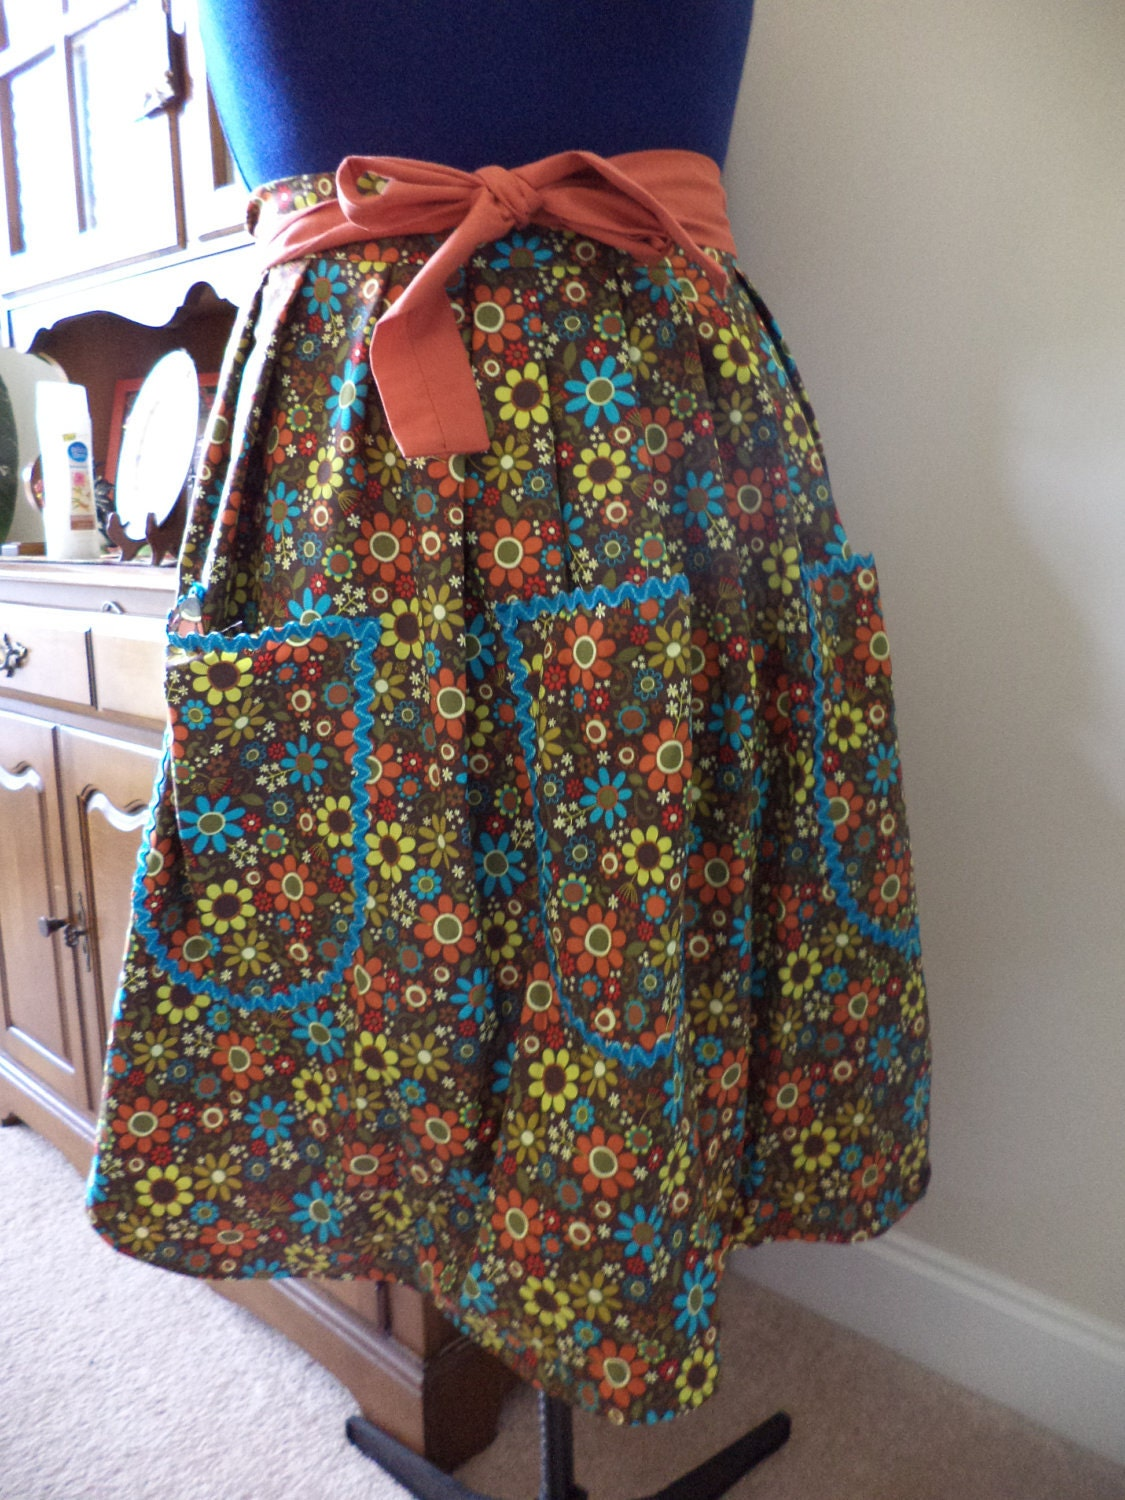 Half apron Aqua and Gold floral pattern on brown background  with burnt orange accents - BeaSewn